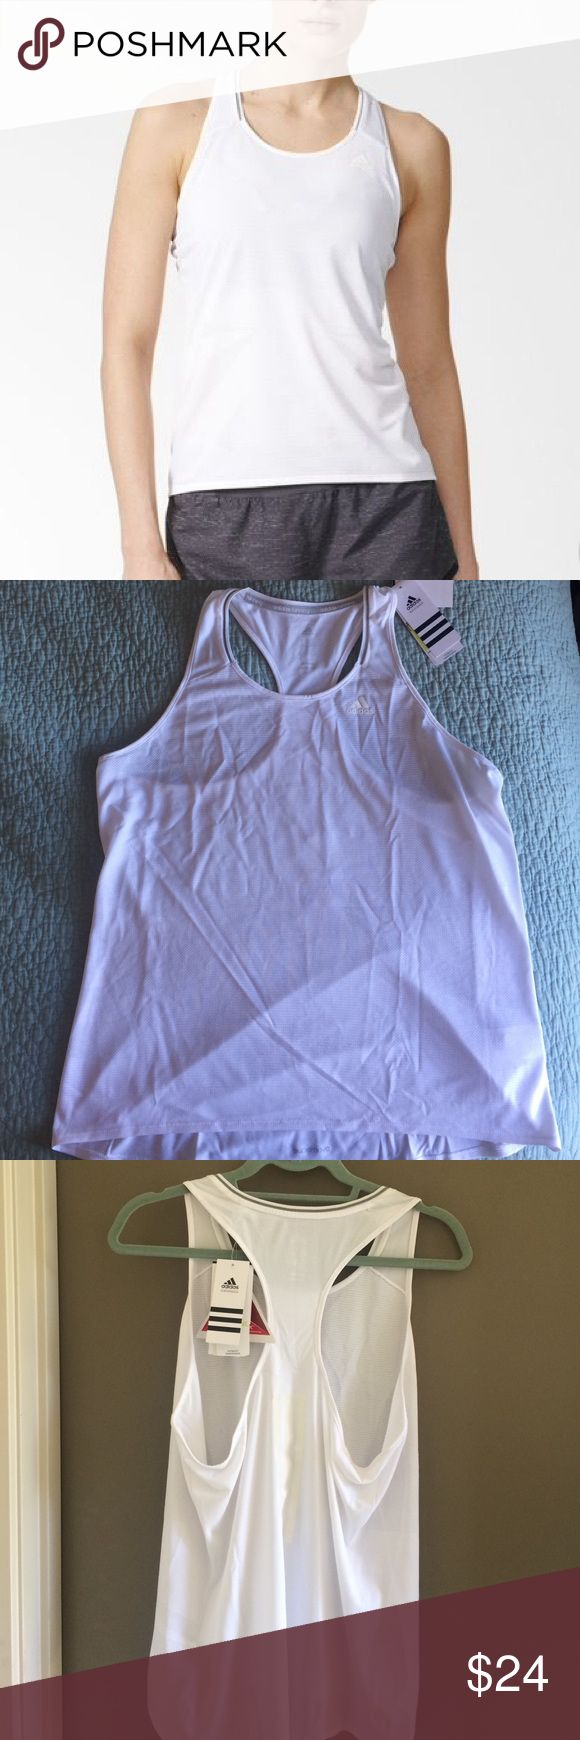 NWT Adidas Supernova White Tank Top, Size XL Brand new with tags! White Adidas supernova running tank top, size XL. Racer back style. Made with sweat wicking climalite fabric. Reflective stripes on back. Measures 20.5 in pit to pit. Adidas Tops Tank Tops